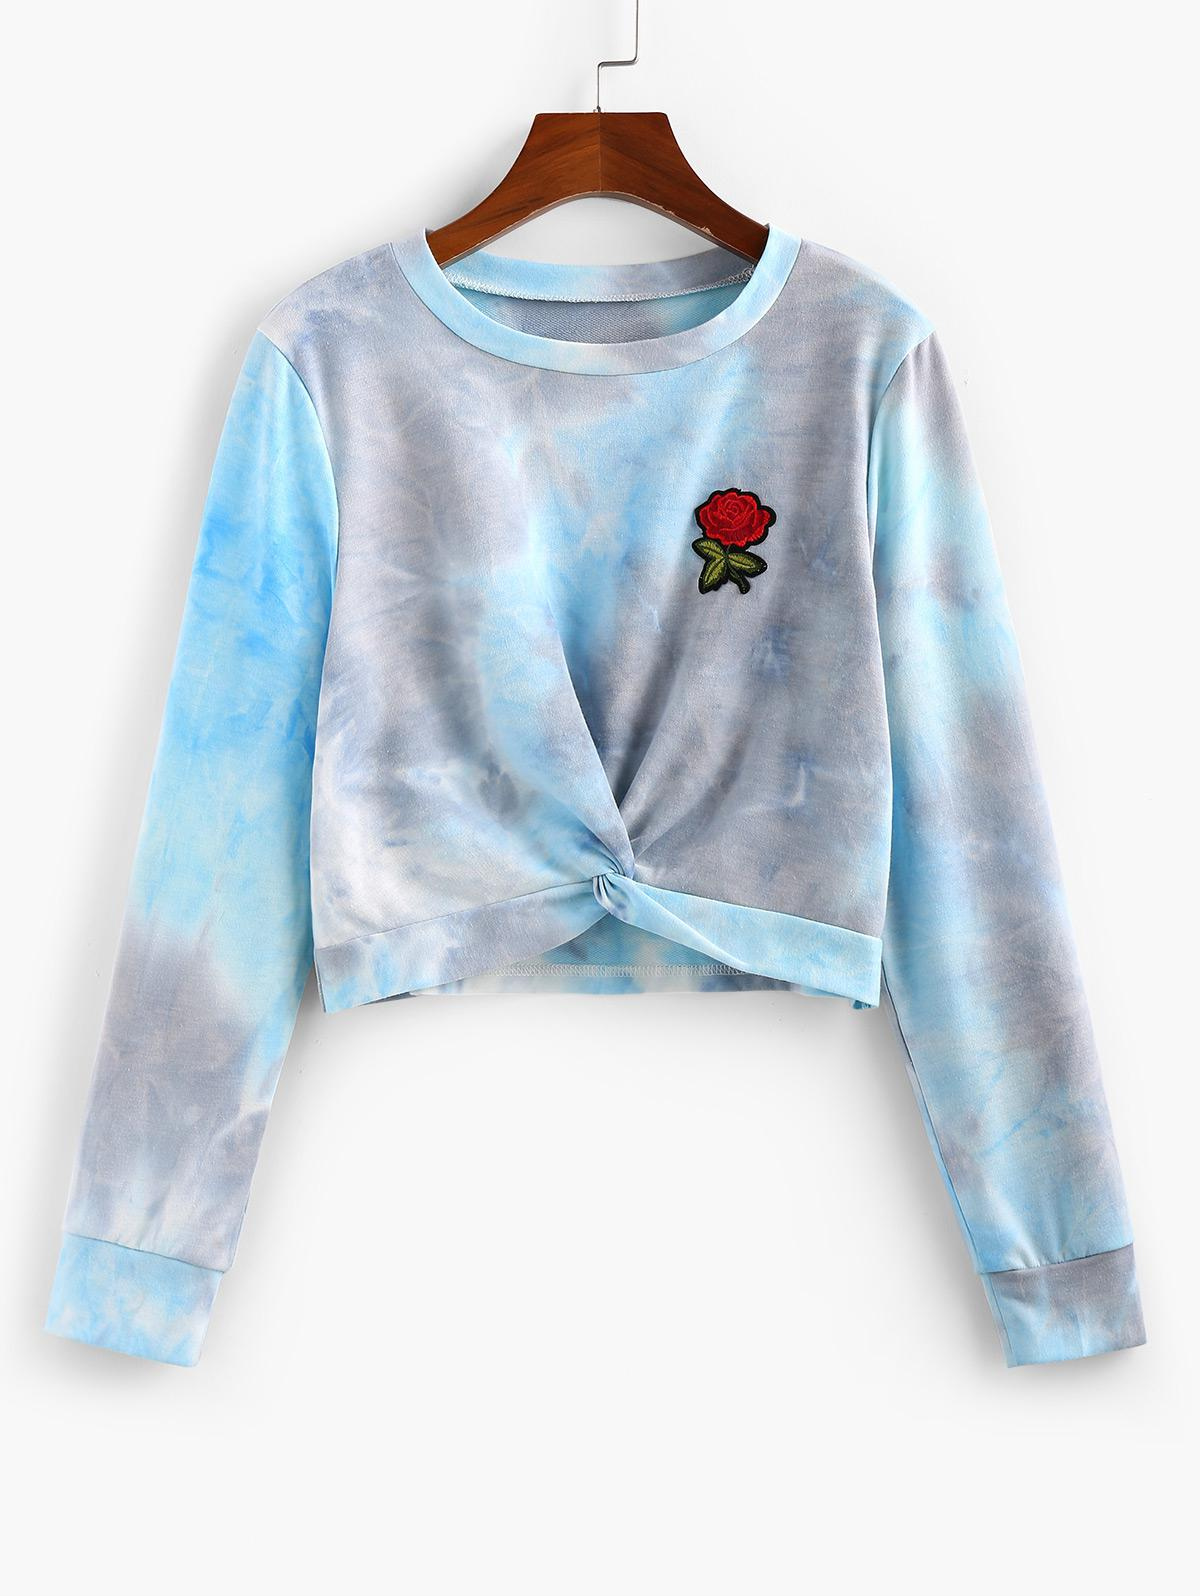 ZAFUL Tie Dye Rose Applique Front Twist Sweatshirt